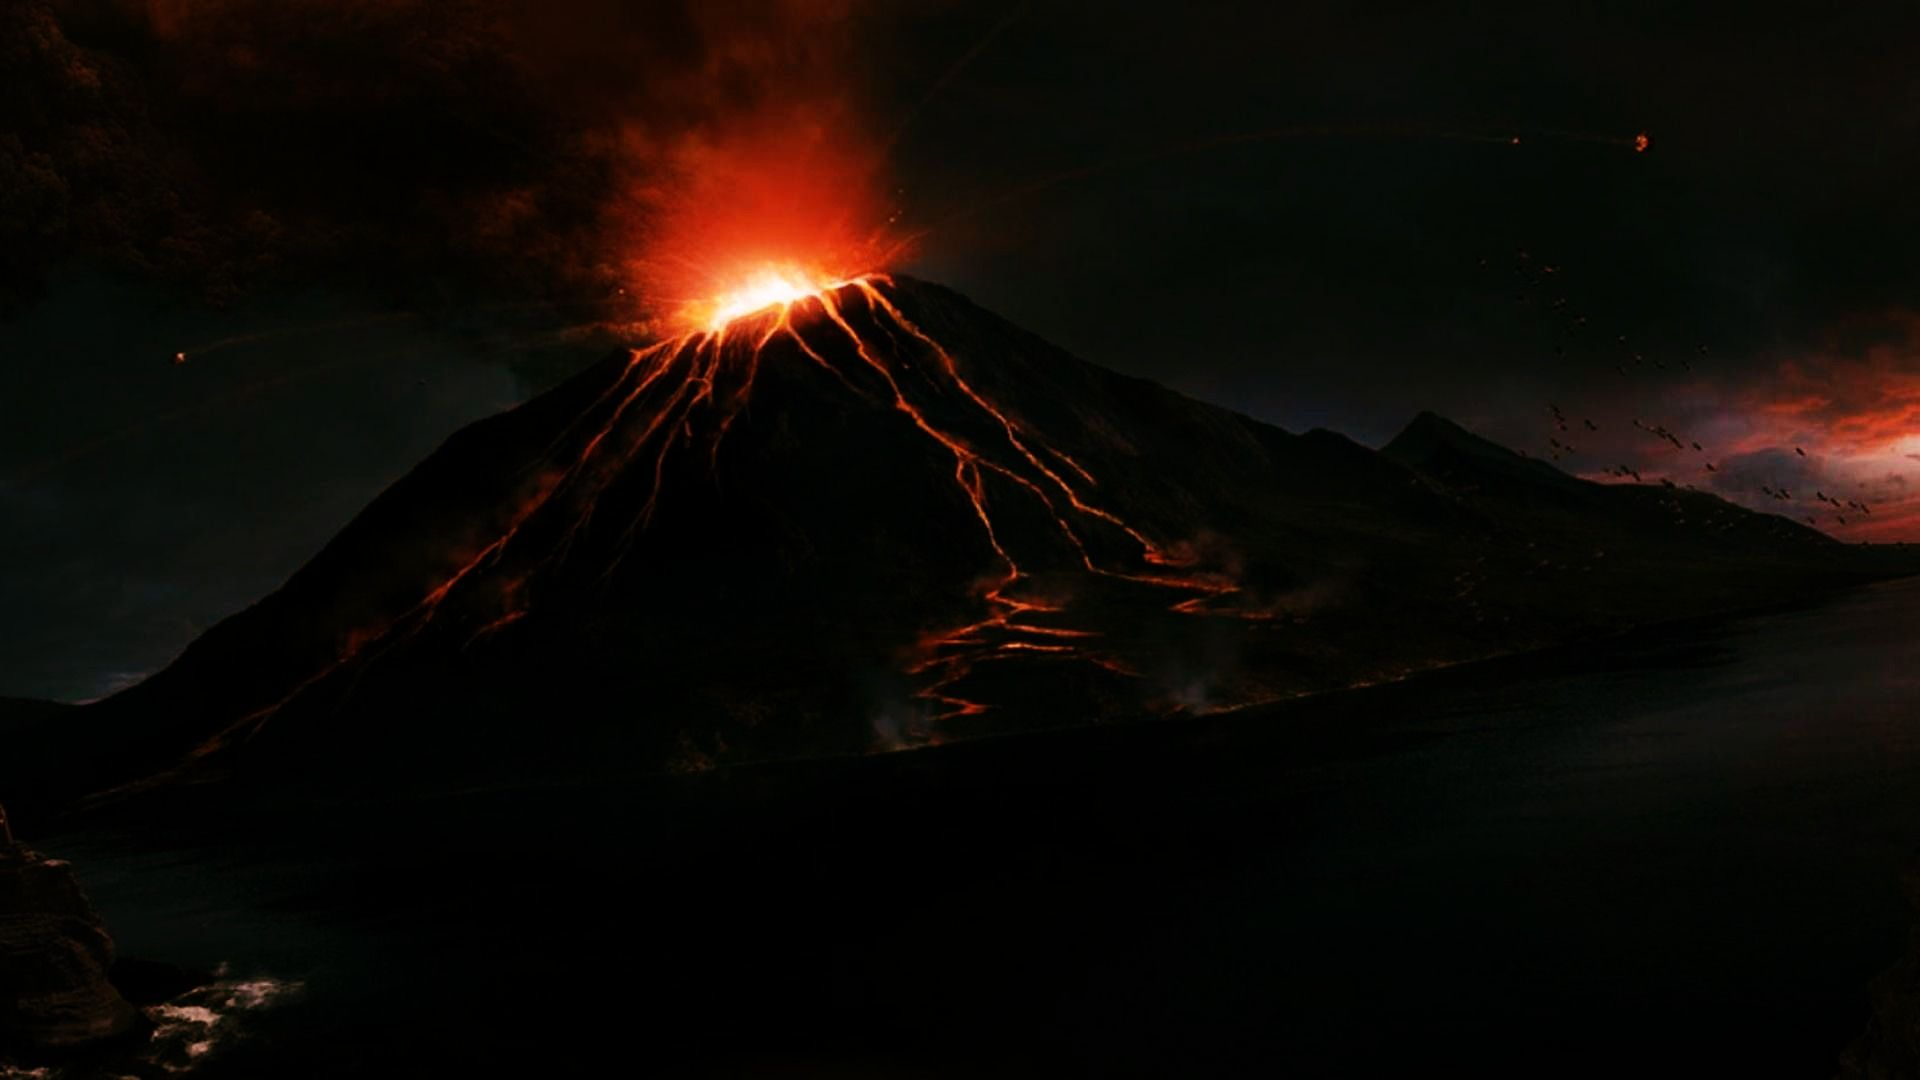 Mount Nyiragongo Night Volcano Wallpaper 1920x1080 Need IPhone 6S Plus Background For IPhone6SPlus Follow 3Wallpapers